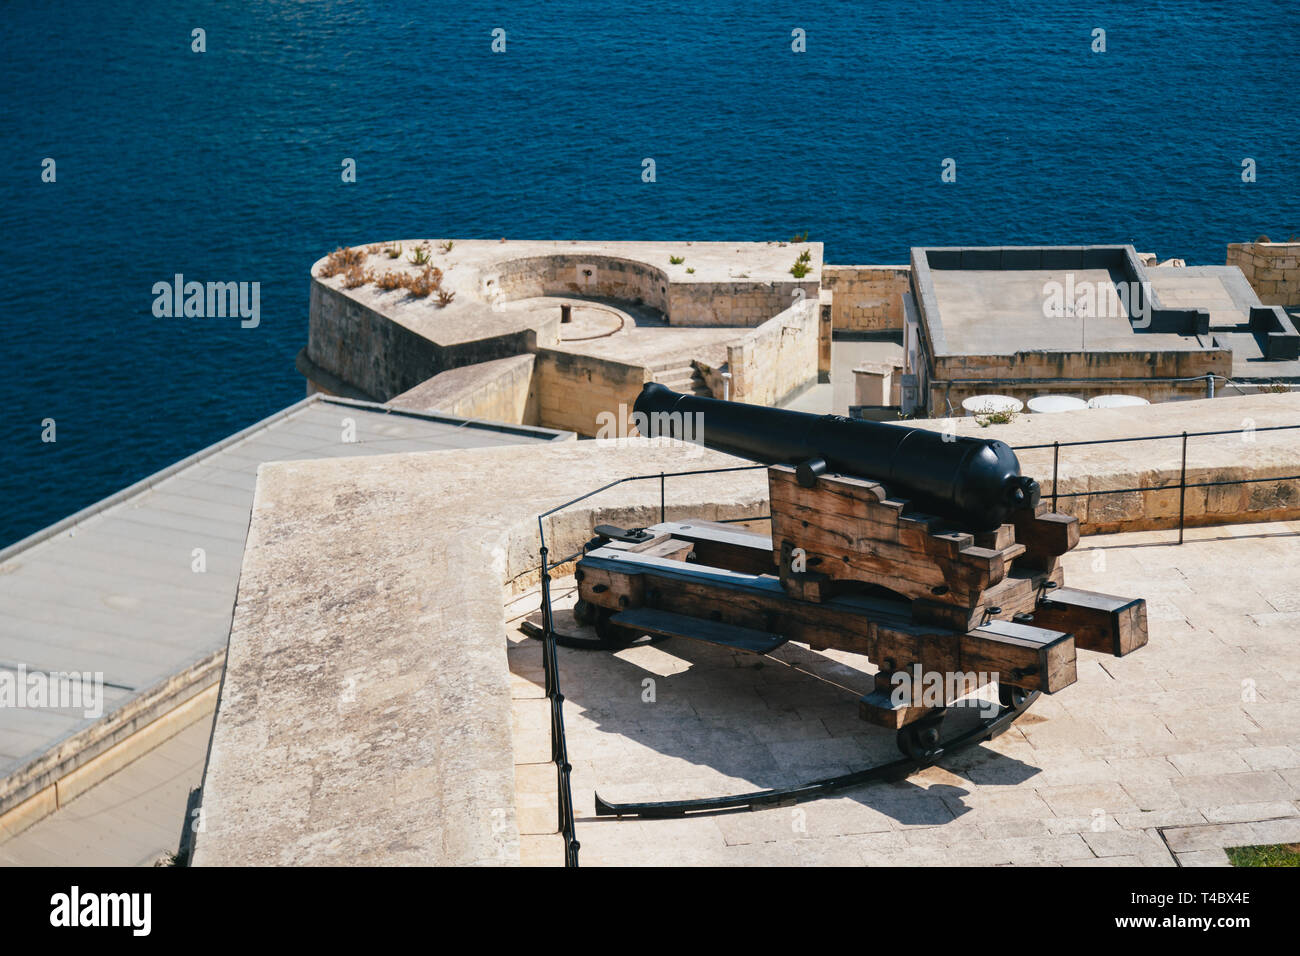 A gun, a cannon from the Saluting Battery in Upper Barrakka Gardens in Valletta, Malta with a commanding view of the Grand Harbor. For almost 500 - Stock Image